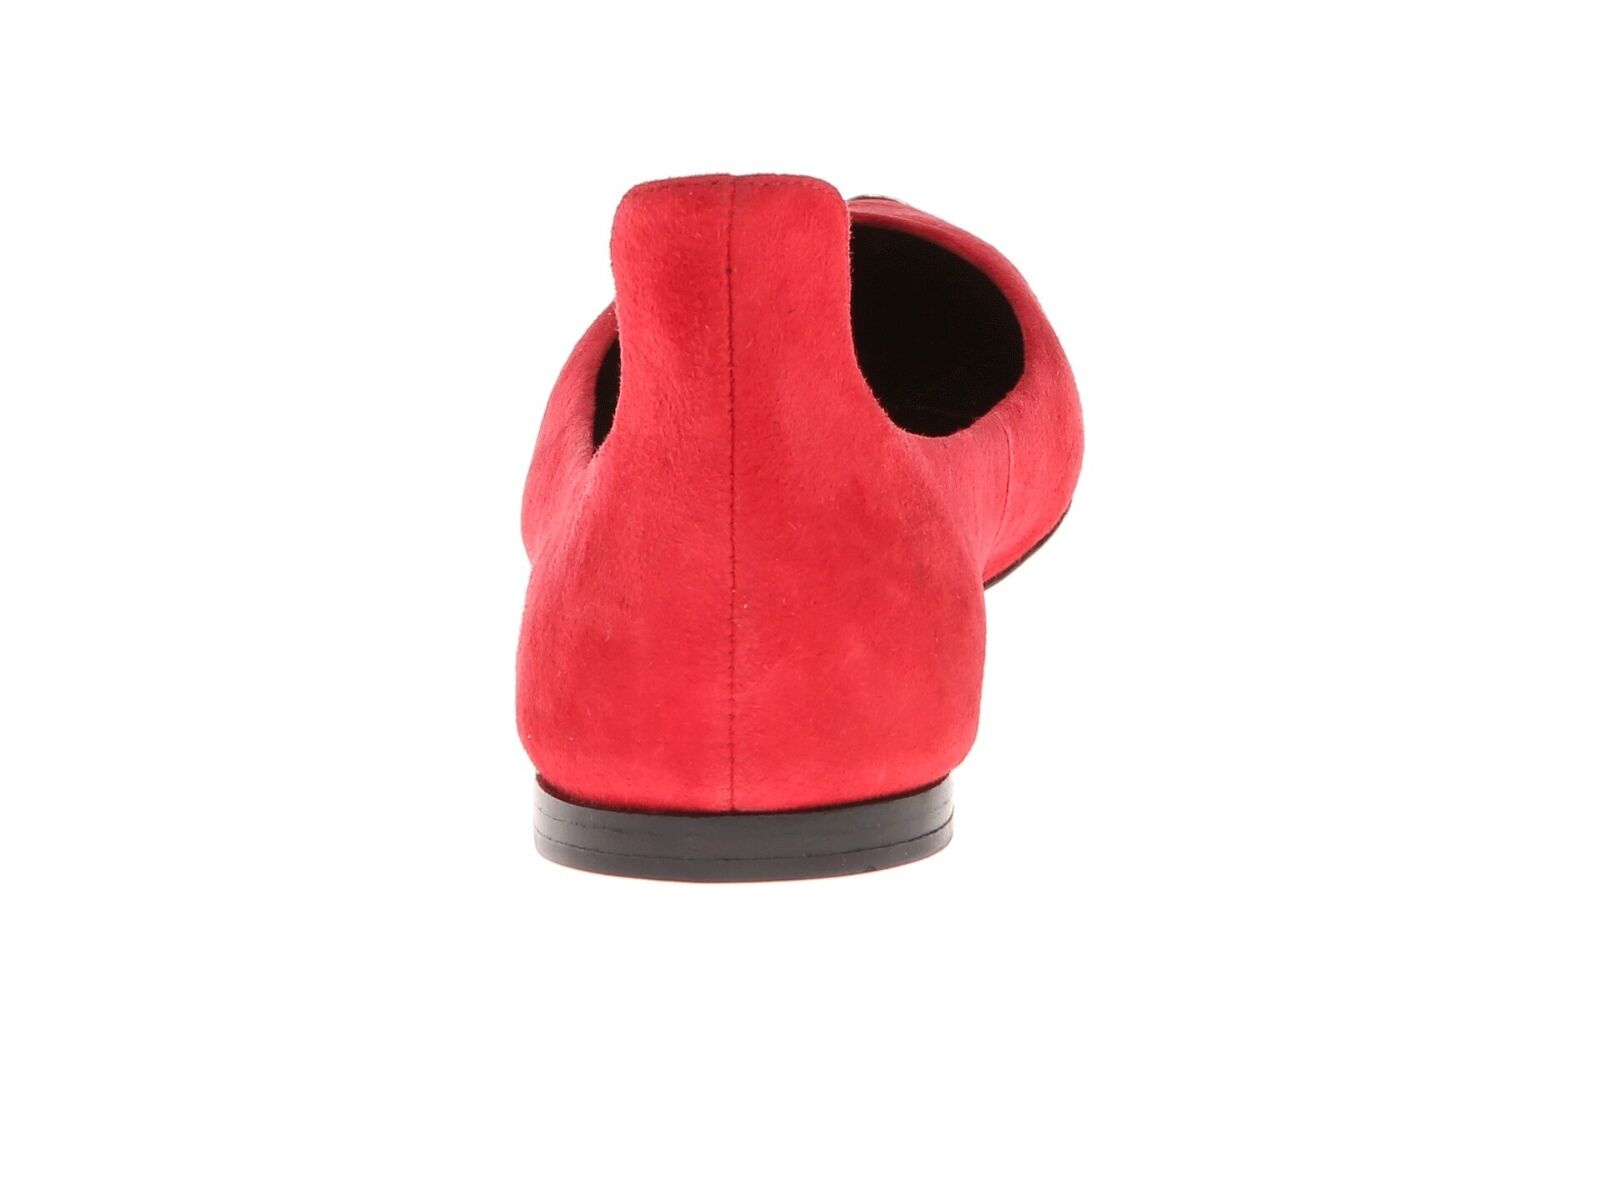 B Brian Atwood Atwood Atwood Violette Cap-Toe Donna Size 9.5 Red Suede Flat Shoe Msrp $295.00 2c3c14